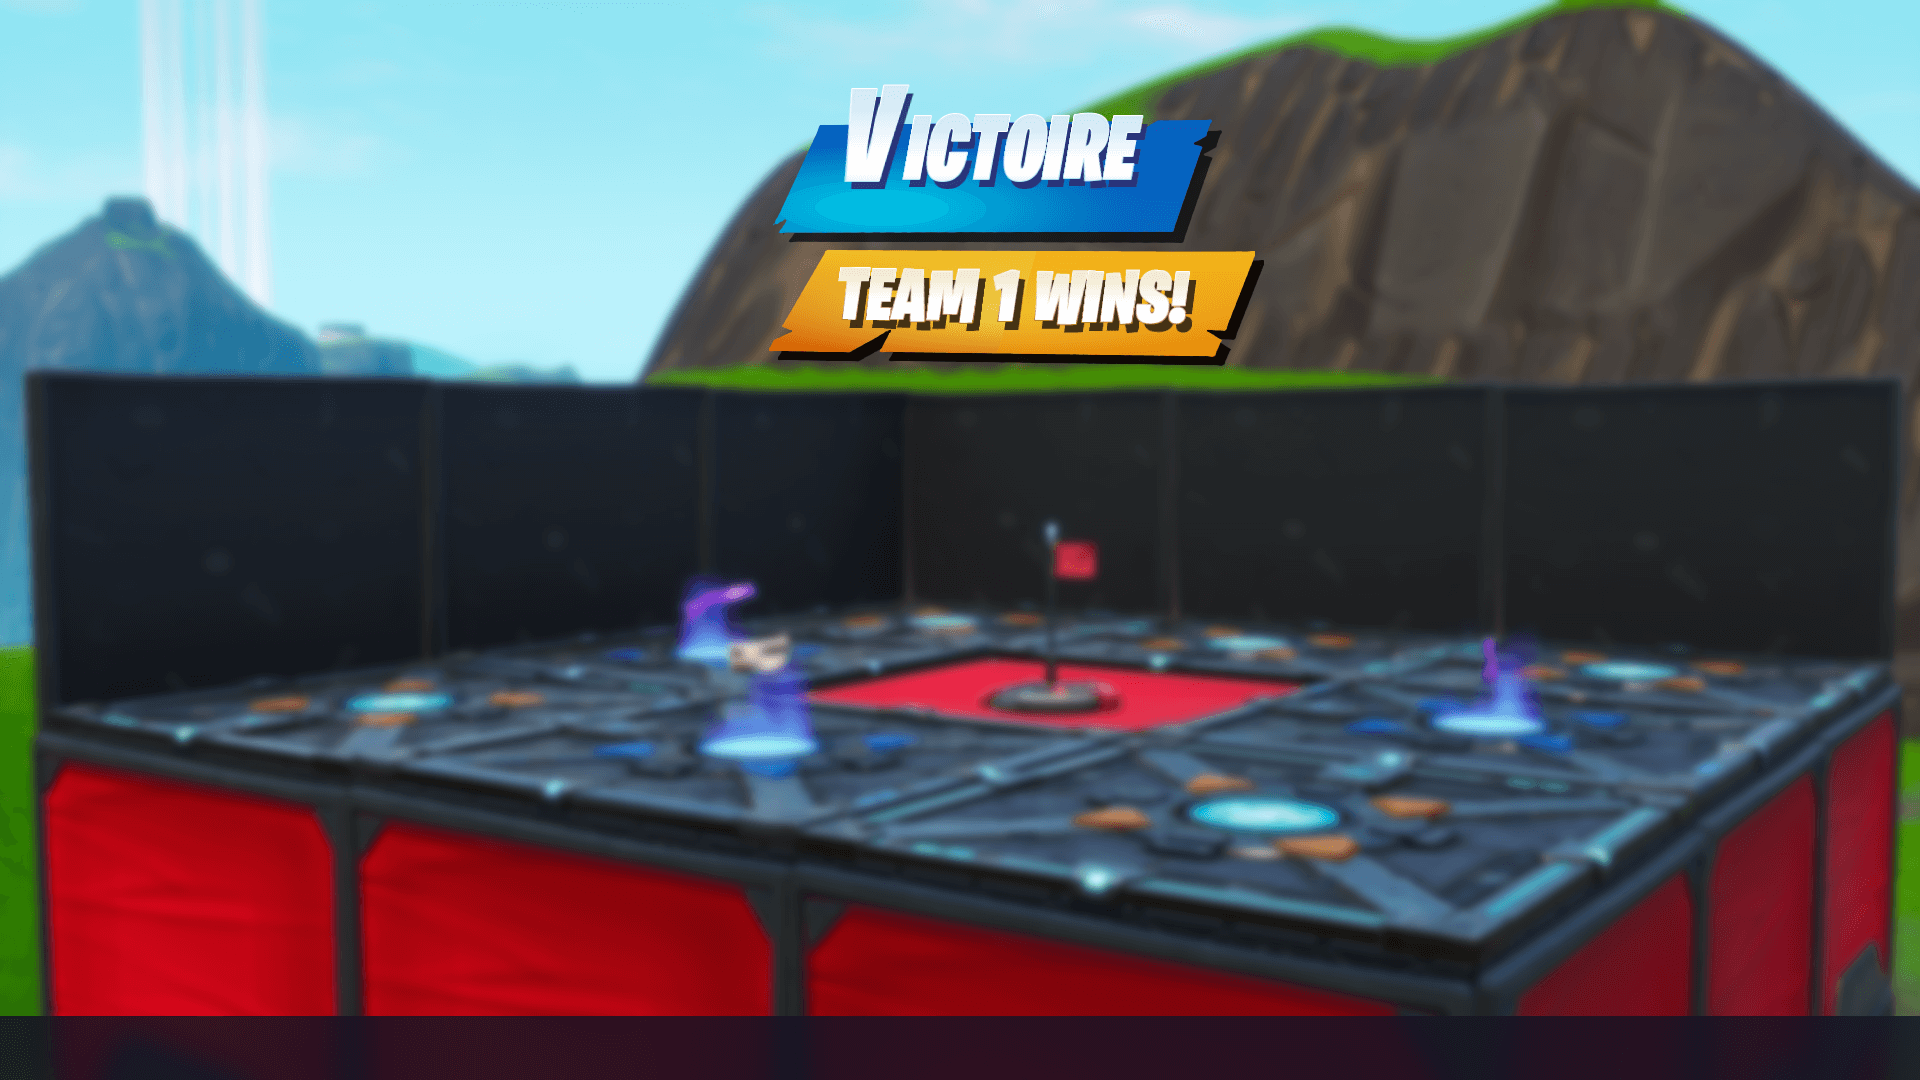 CAPTURE THE FLAG IN FORTNITE